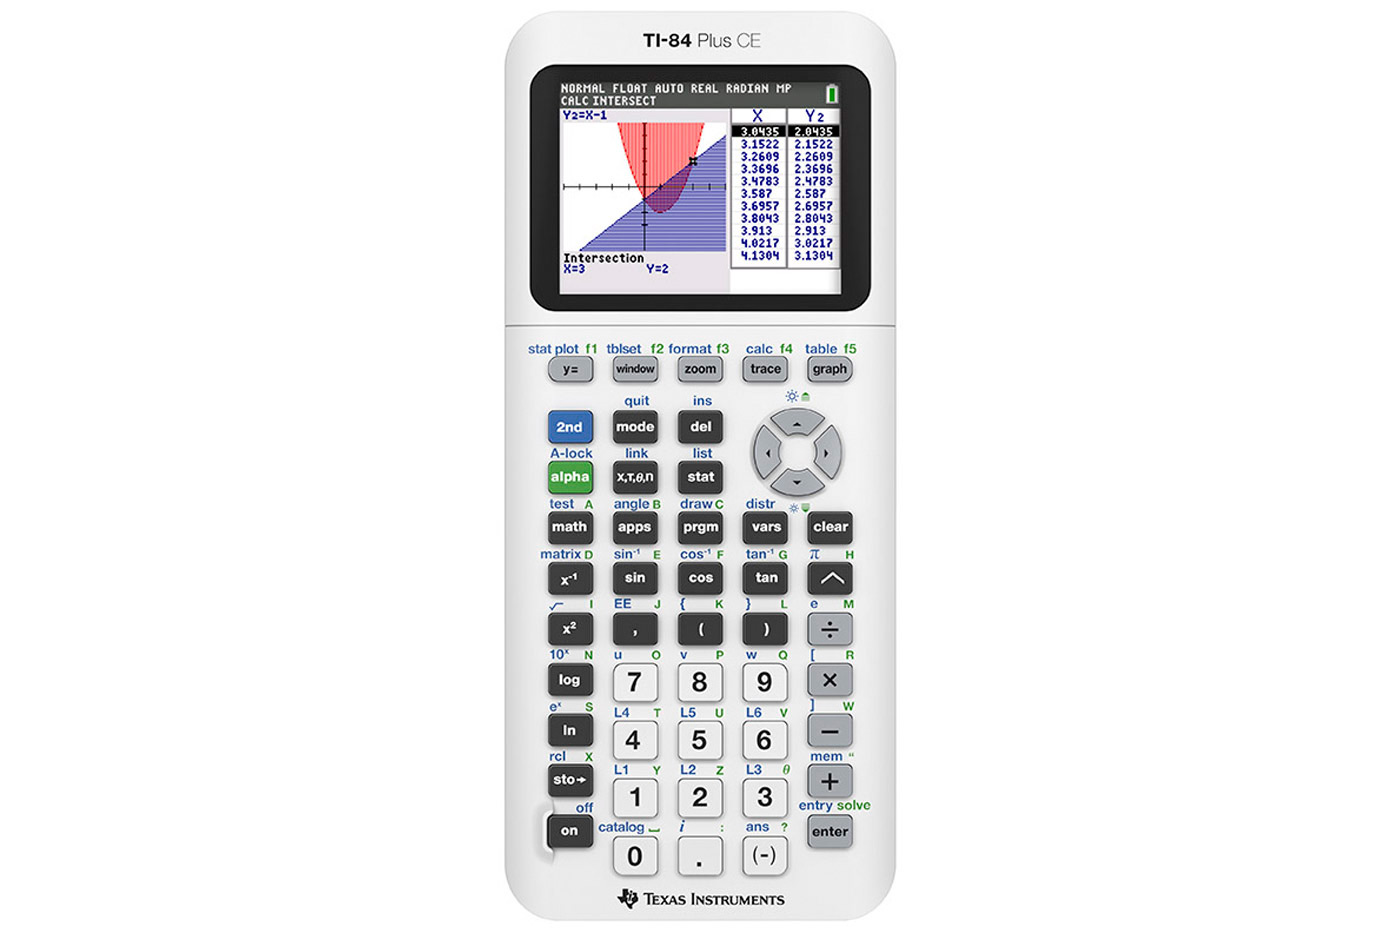 TI-84 Plus CE in Bright White